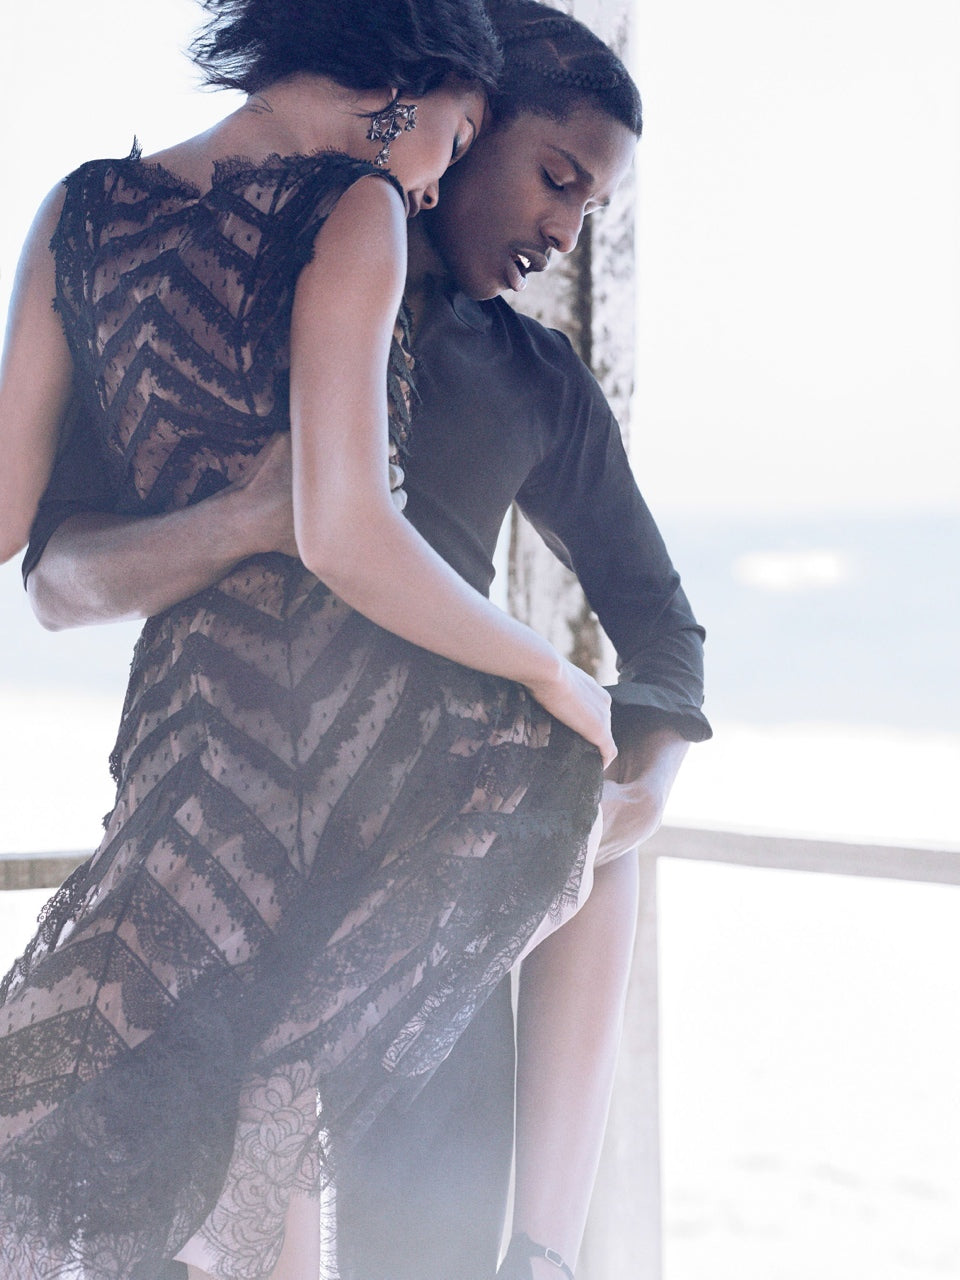 A$AP Rocky Chanel Iman Vogue Sept 2014 5